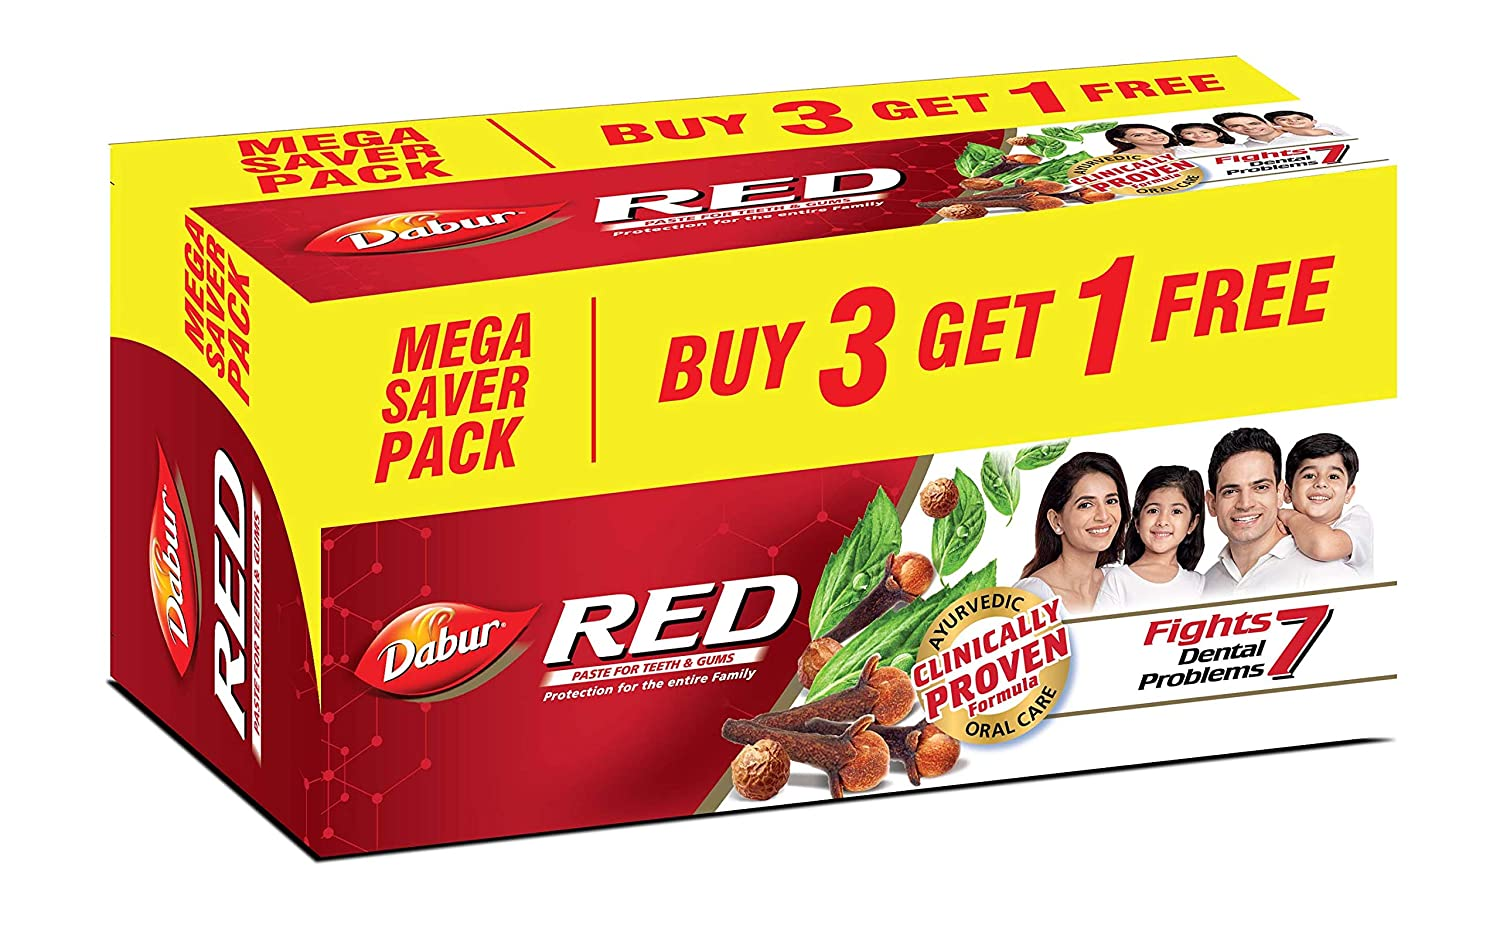 Buy Dabur Red Paste, 600g (Buy 3 Get 1 Free) & Dabur Red Paste